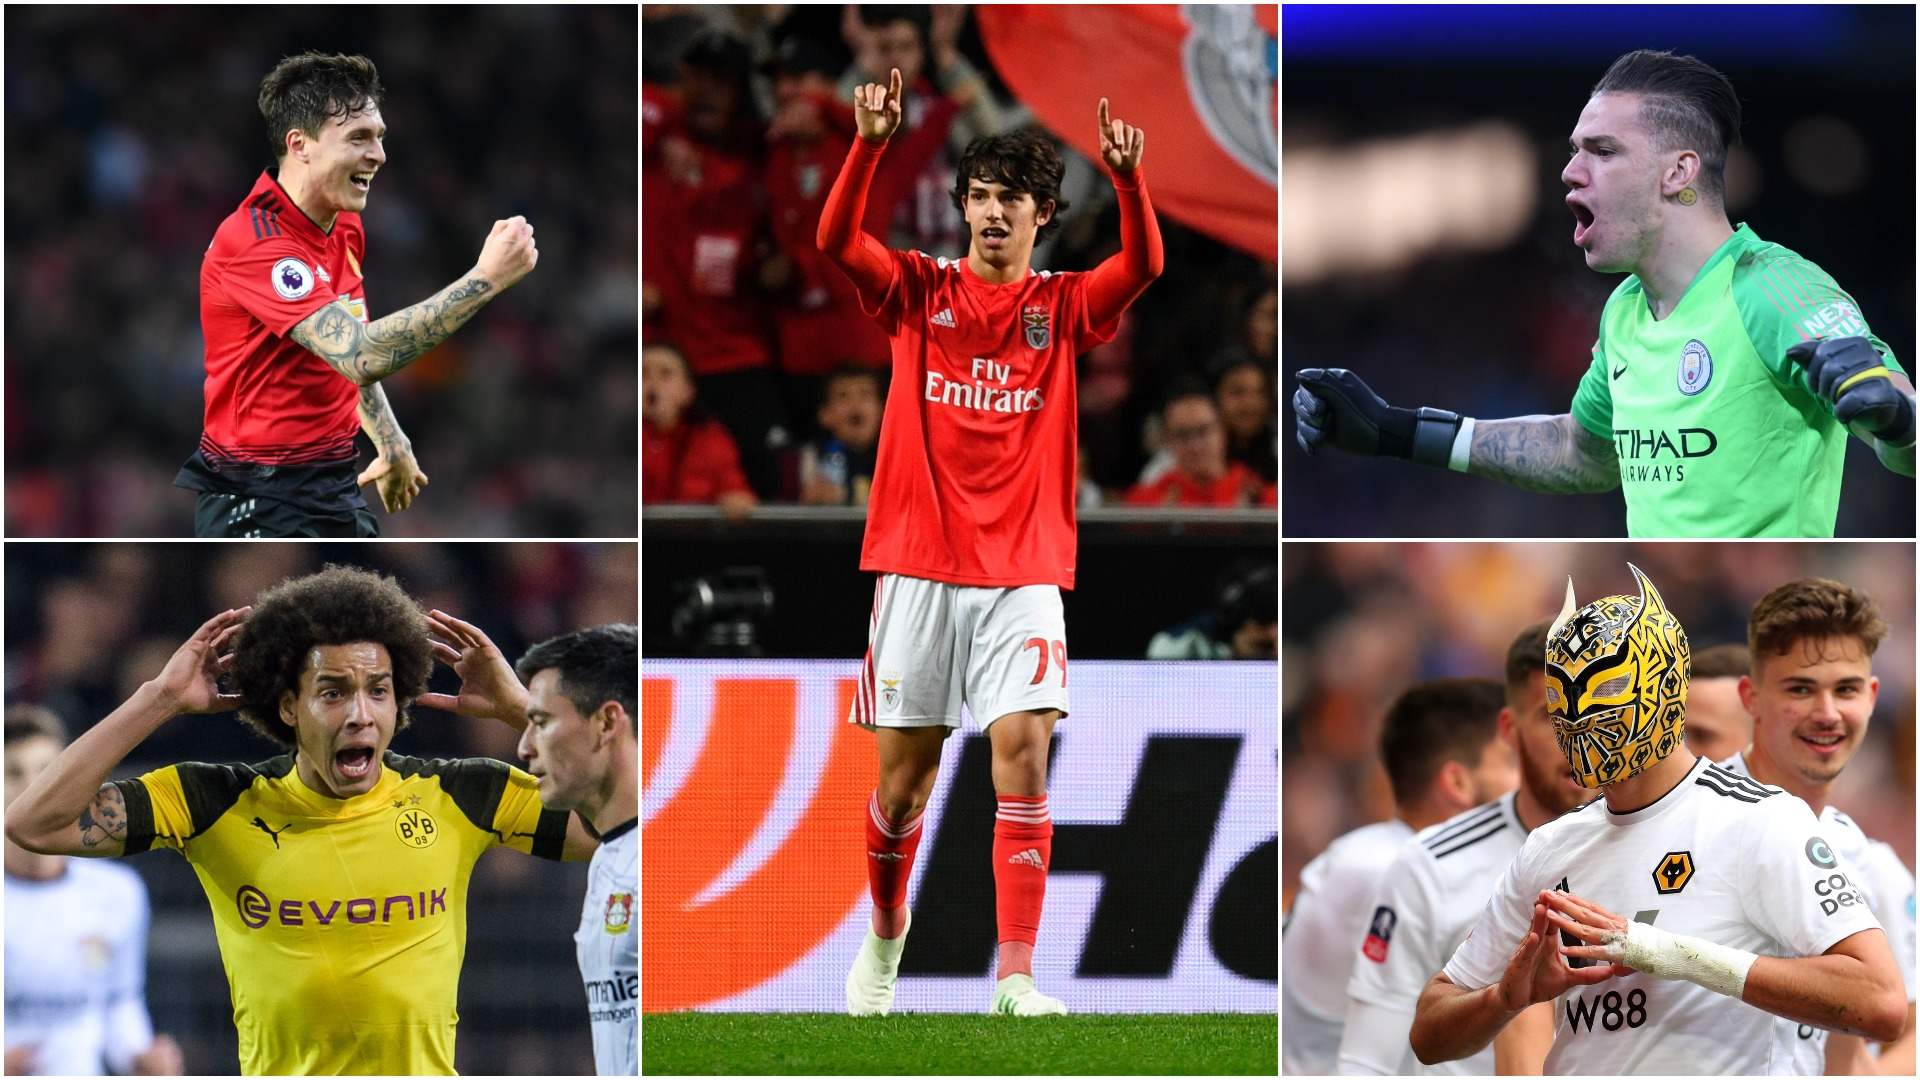 Joao Felix to Atletico: Benfica's talent factory strikes gold again